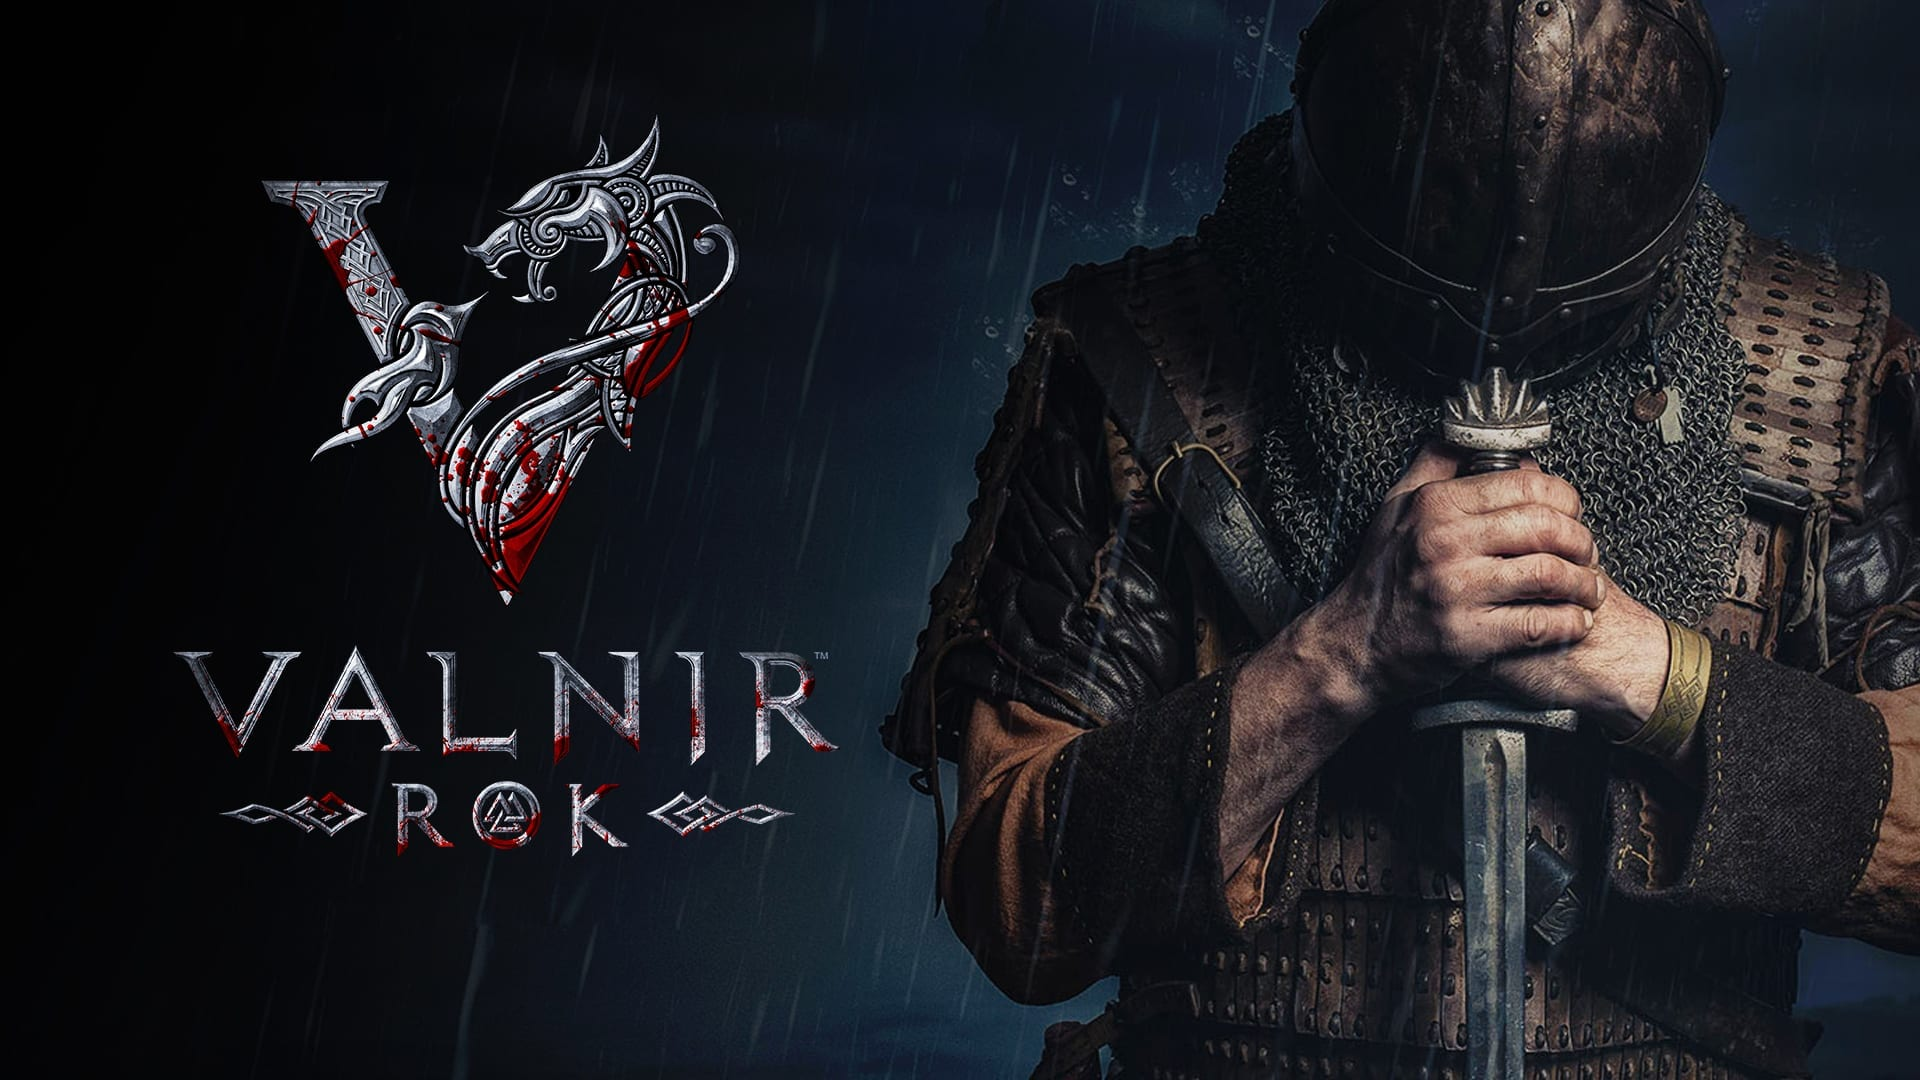 Big Changes Are Coming To Valnir Rok – Price Discount And A Huge Update